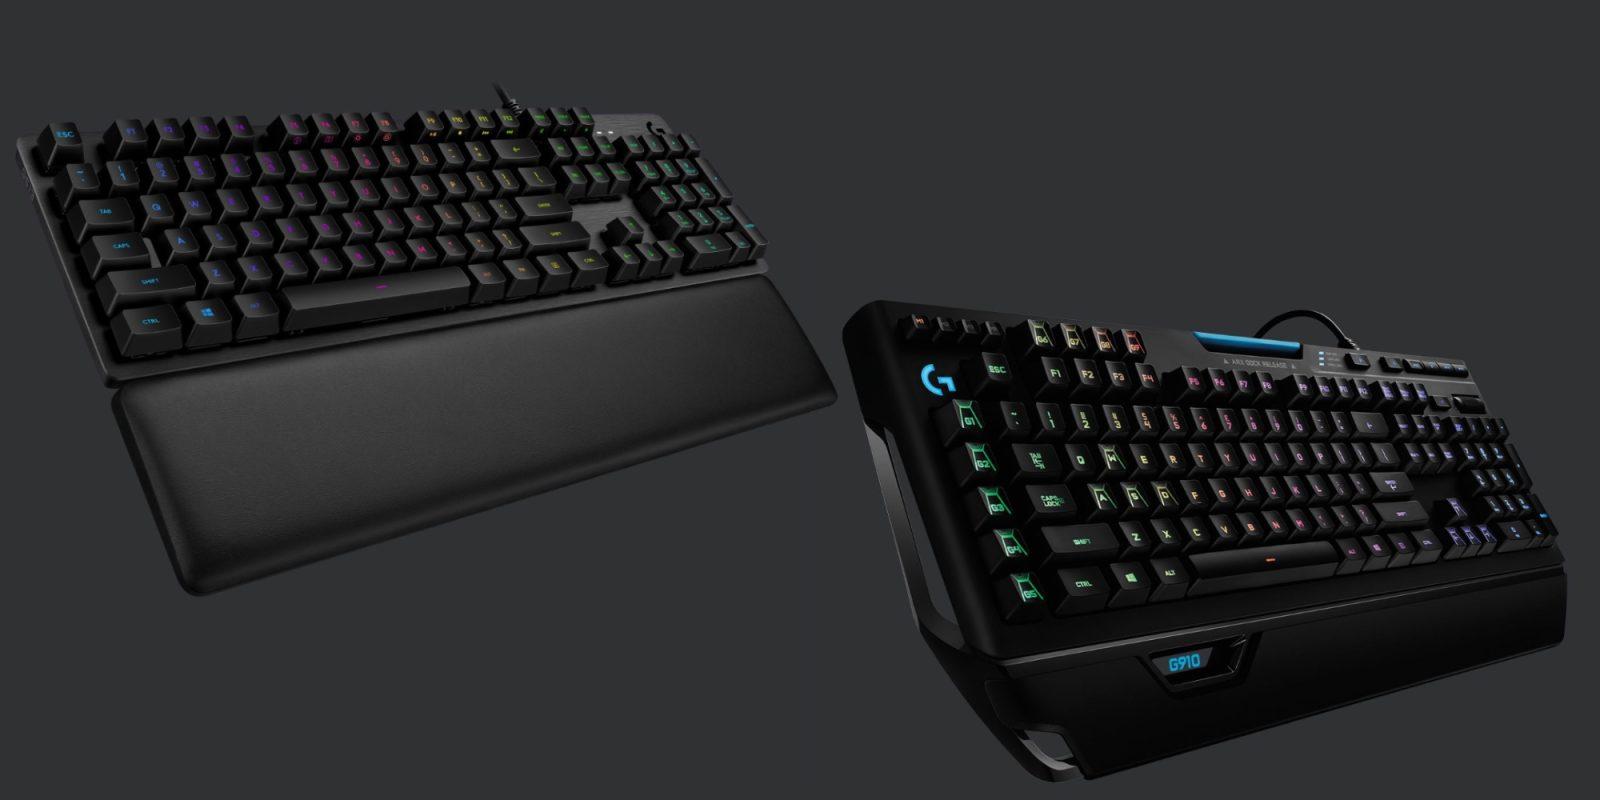 250fe78e518 Add Logitech's G513 LIGHTSYNC RGB Keyboard to your desk for $120 (Reg.  $150), more from $100